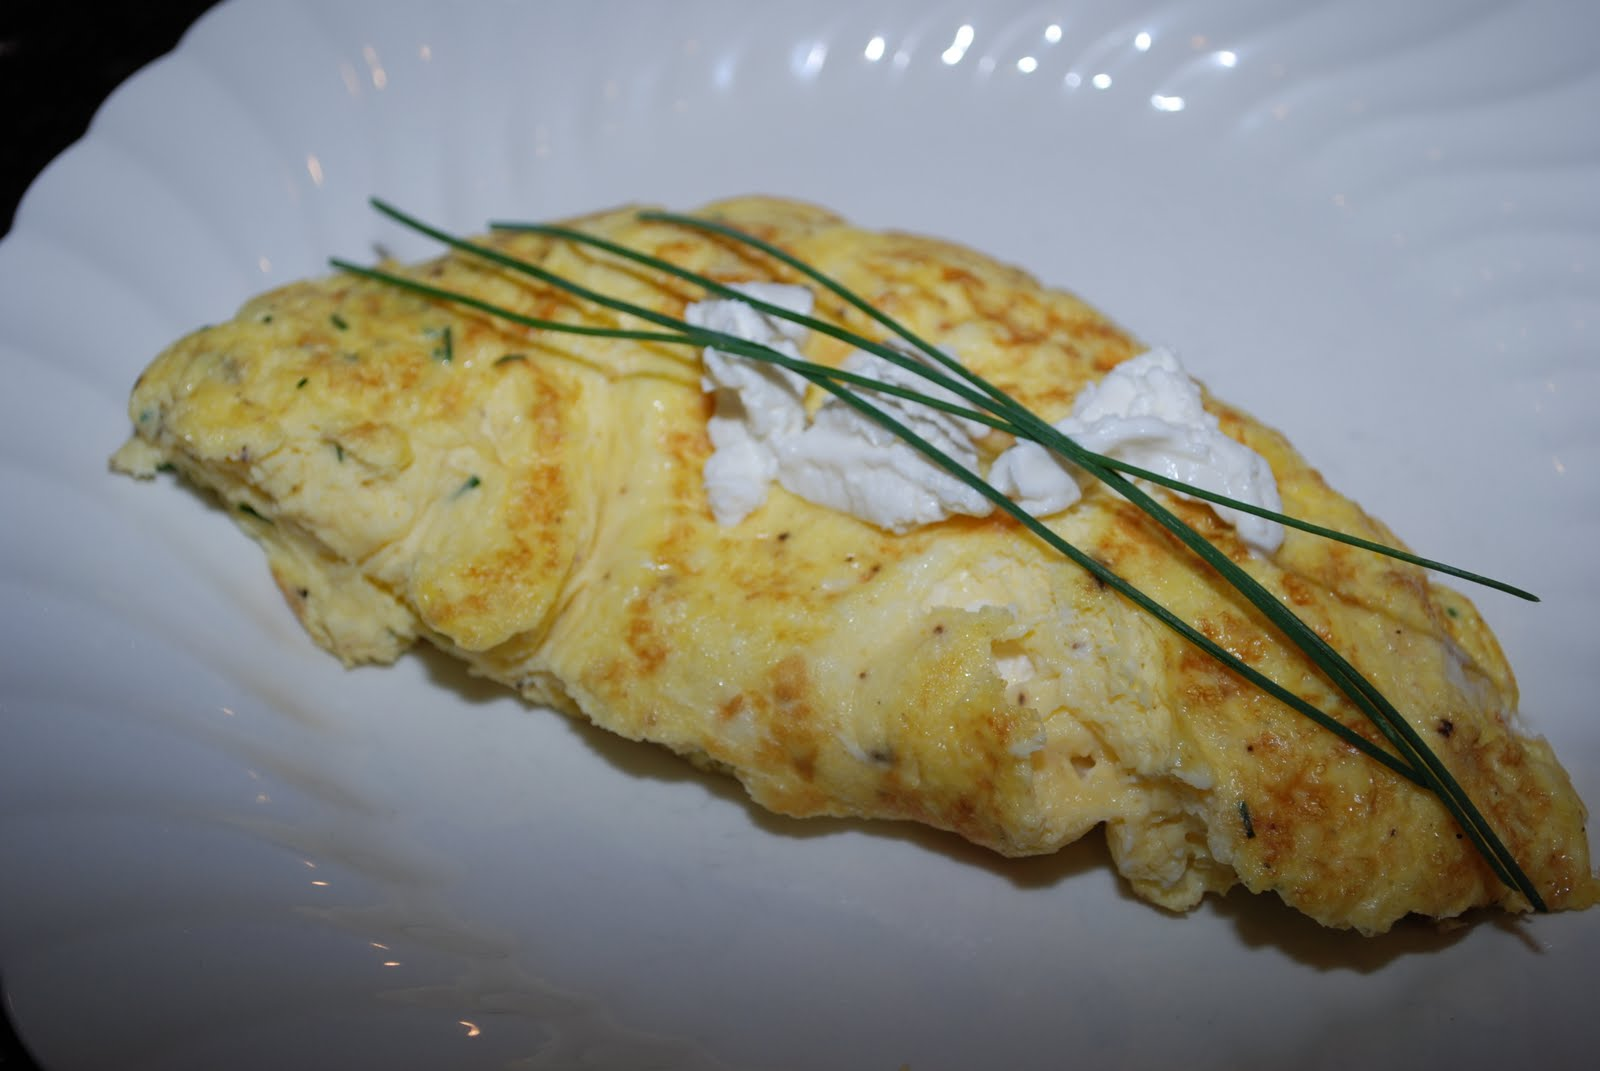 The Flying Foodie: Goat Cheese & Chive Omelet